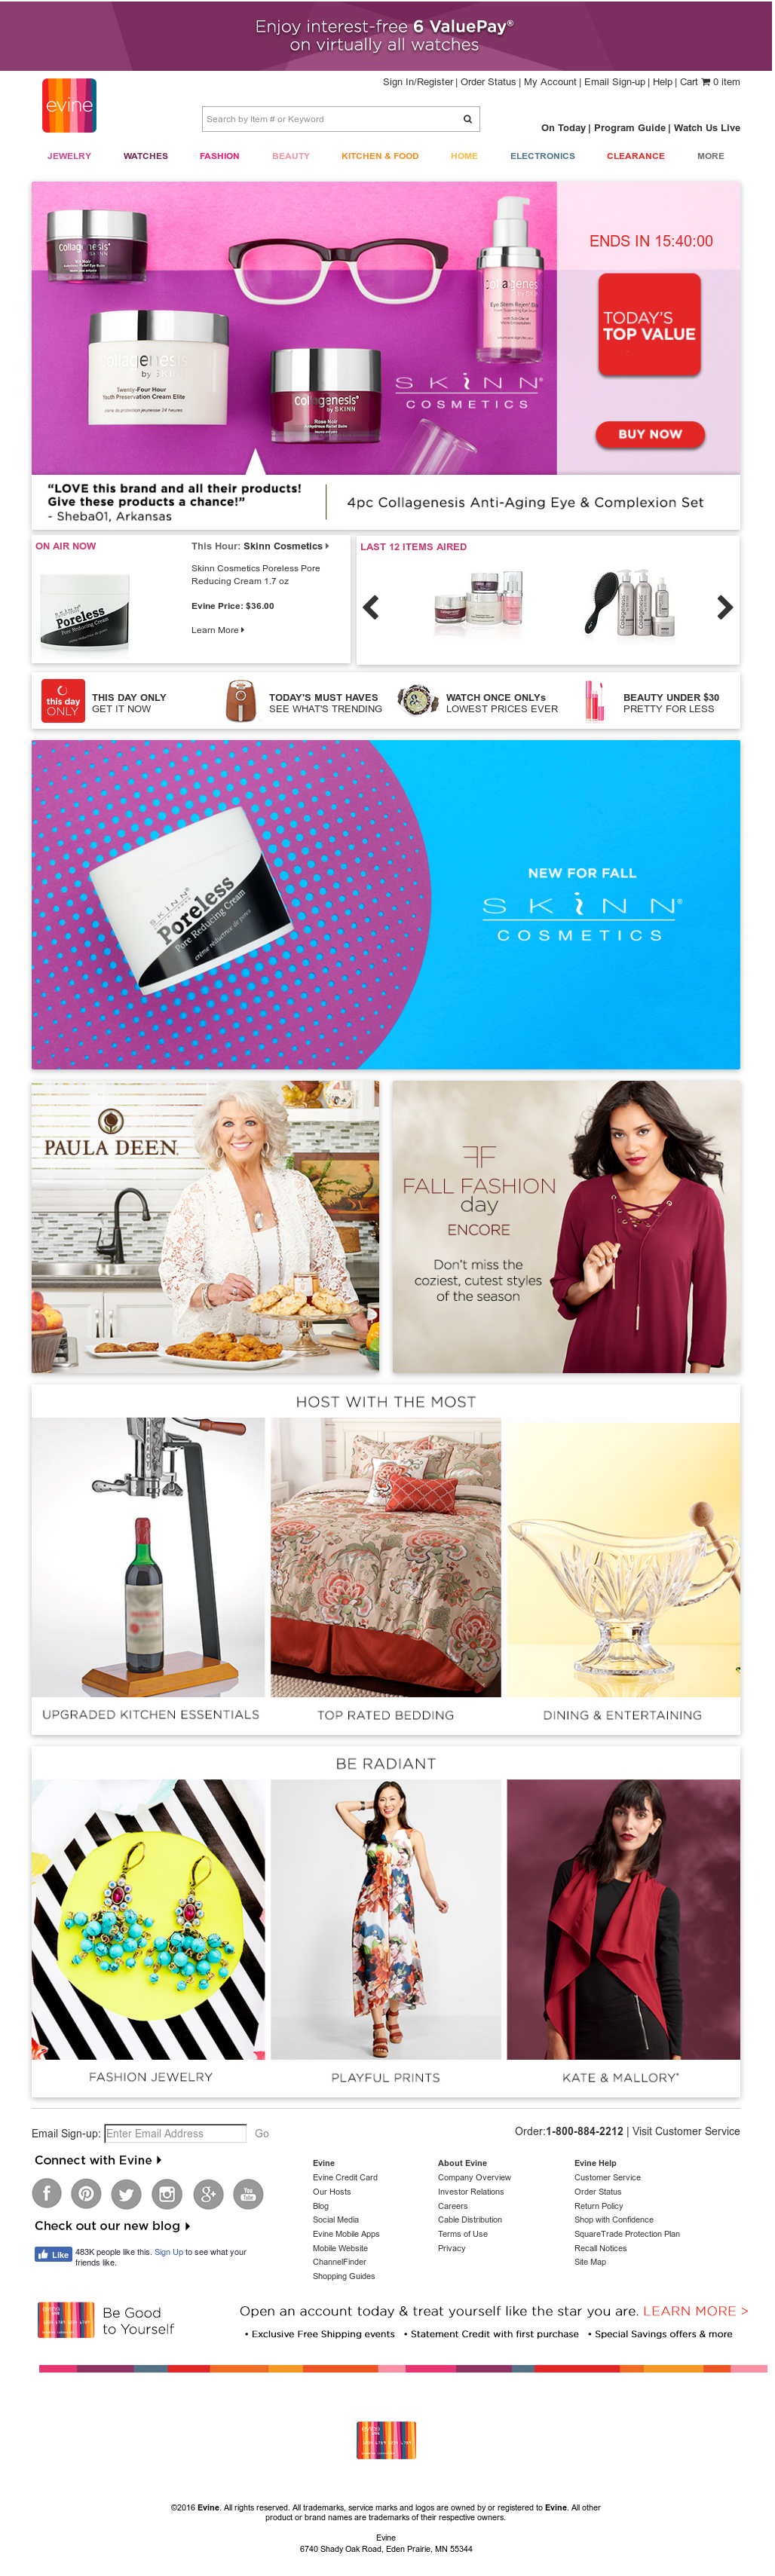 Evine Competitors, Revenue and Employees - Owler Company Profile